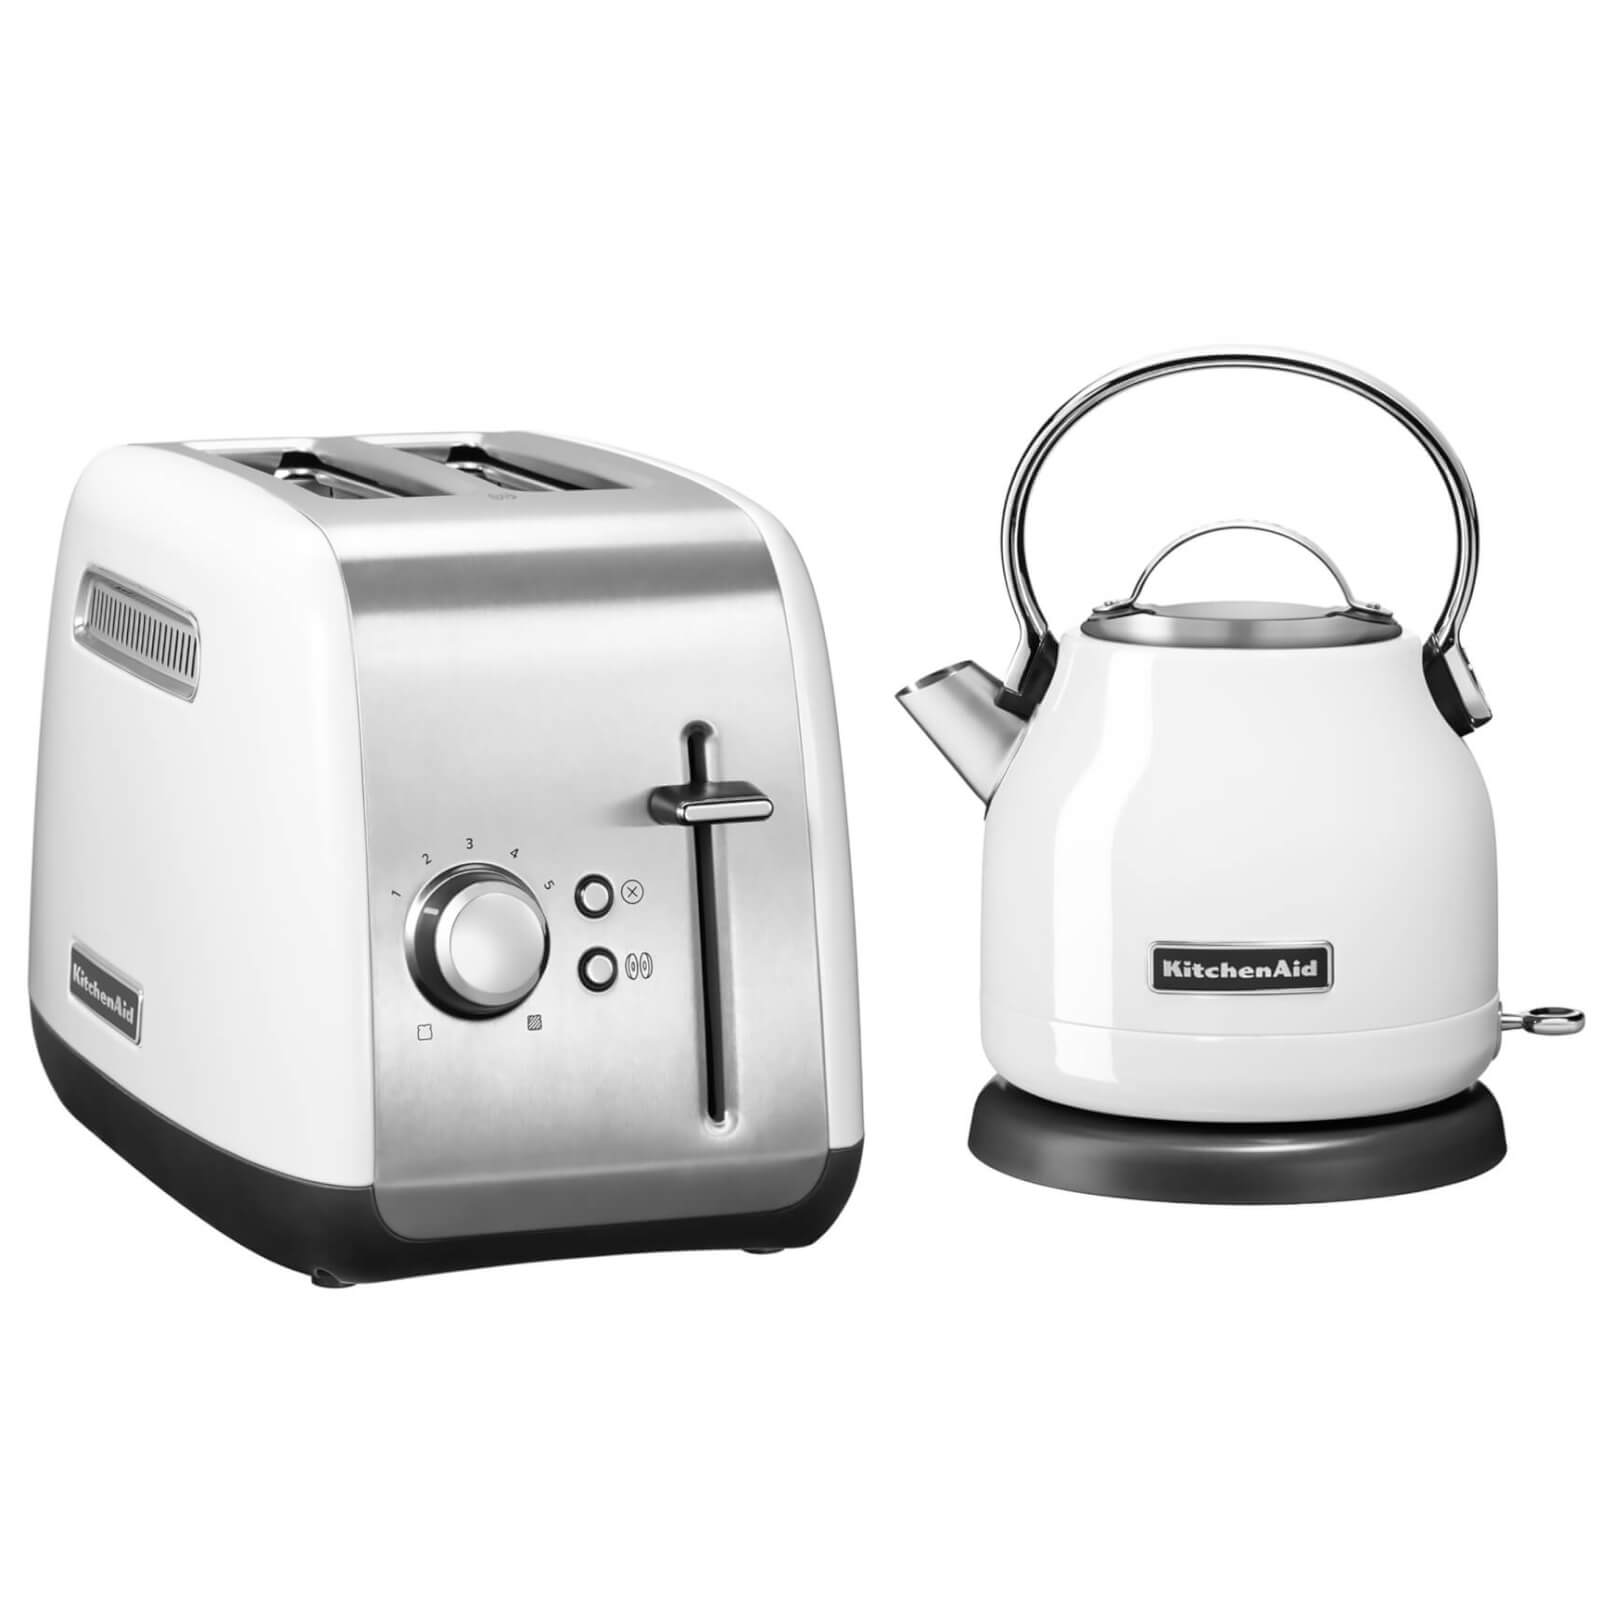 KitchenAid Classic Kettle and 2 Slot Toaster Bundle - White